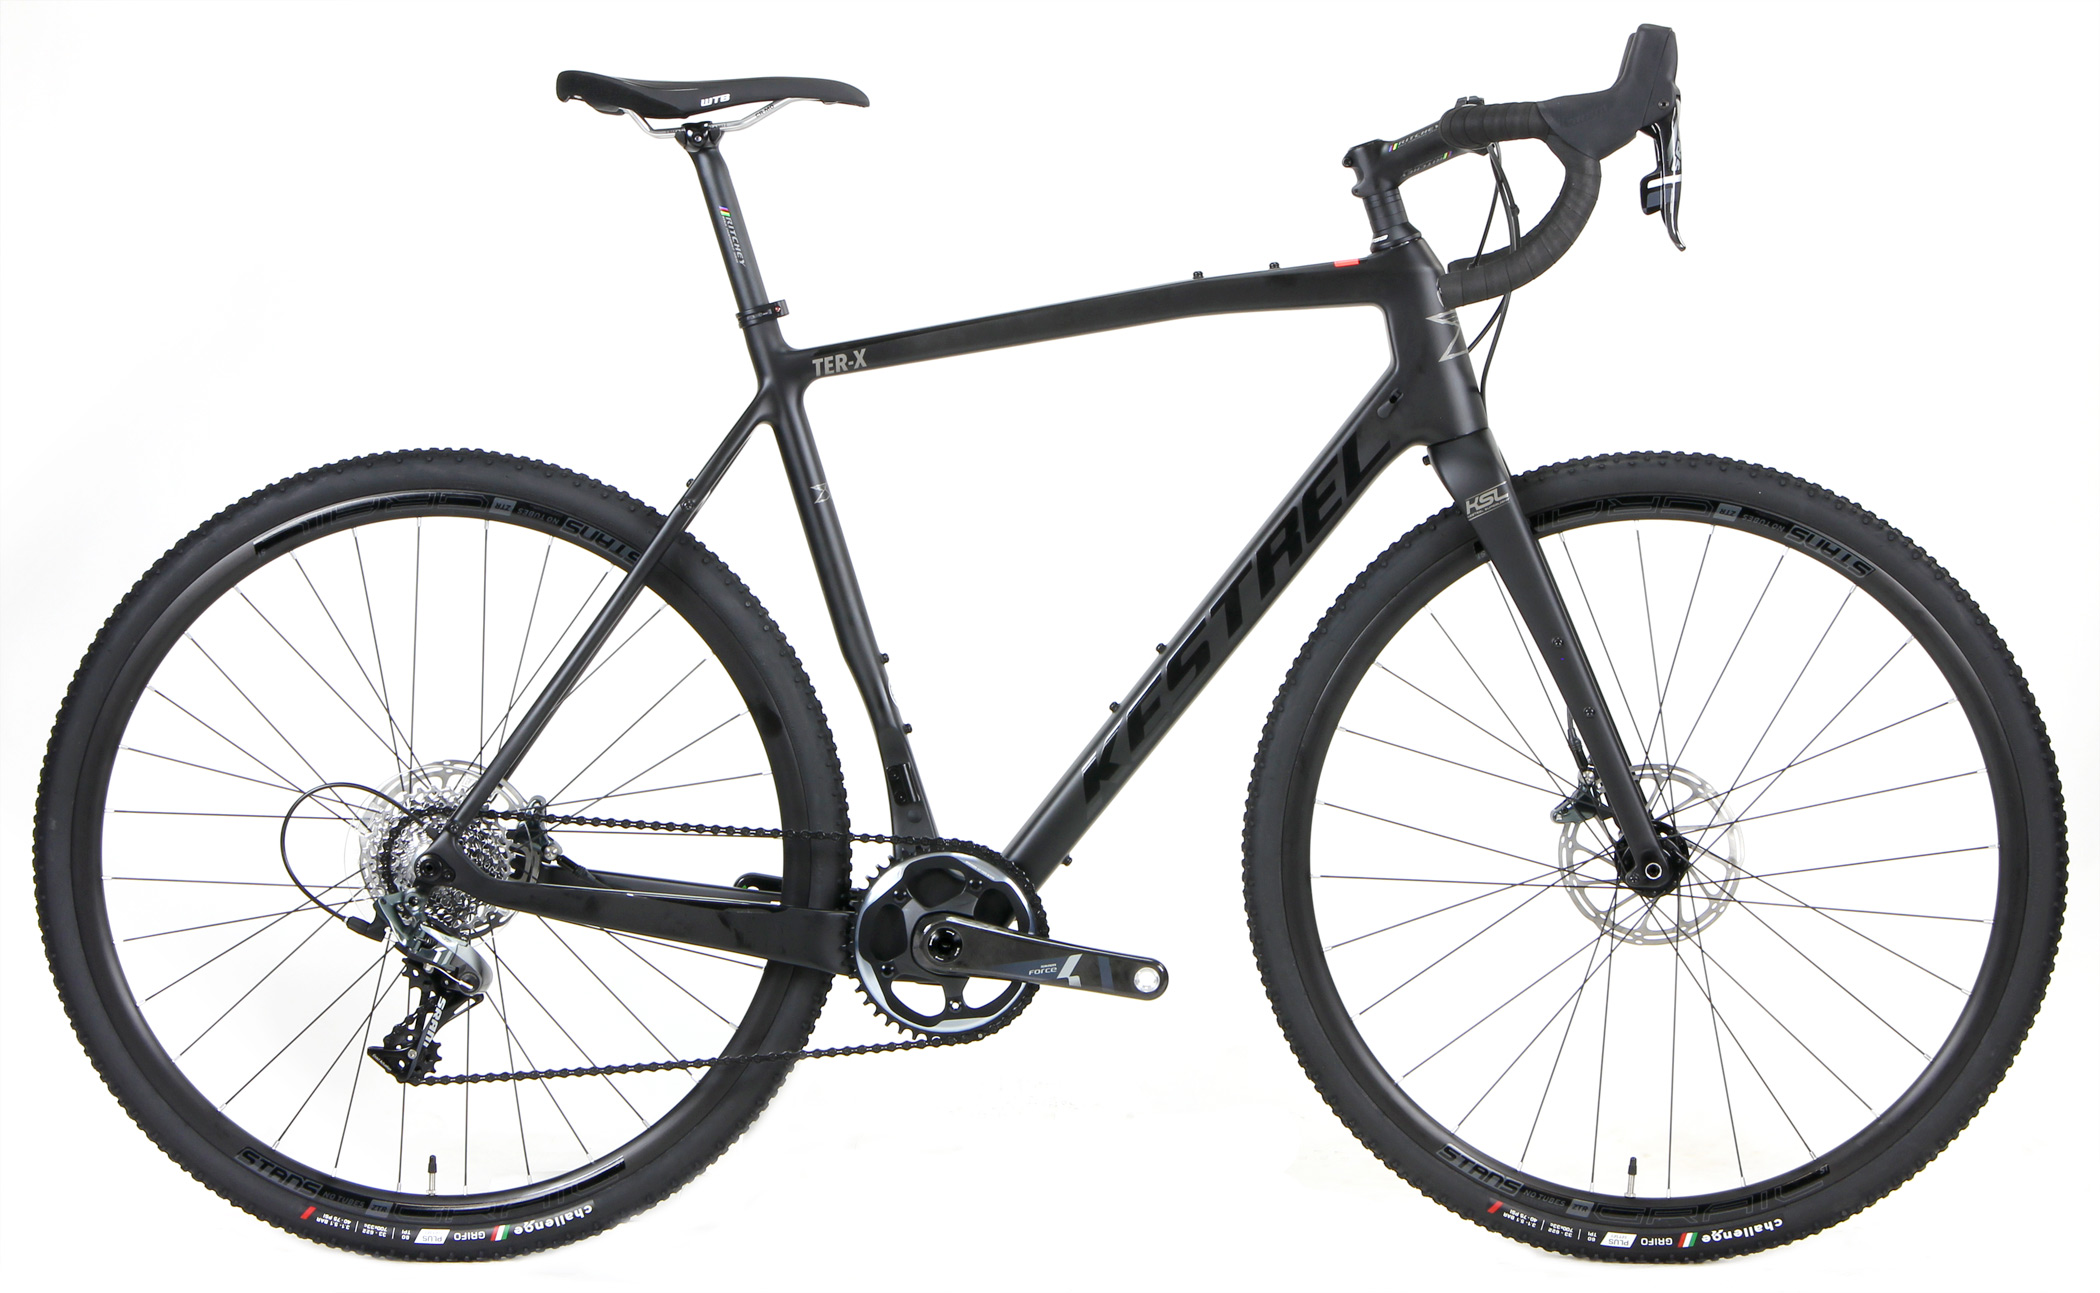 Bikes Kestrel Ter X Force 1 X 11 Carbon Hydraulic Disc Brake Gravel Bike Image